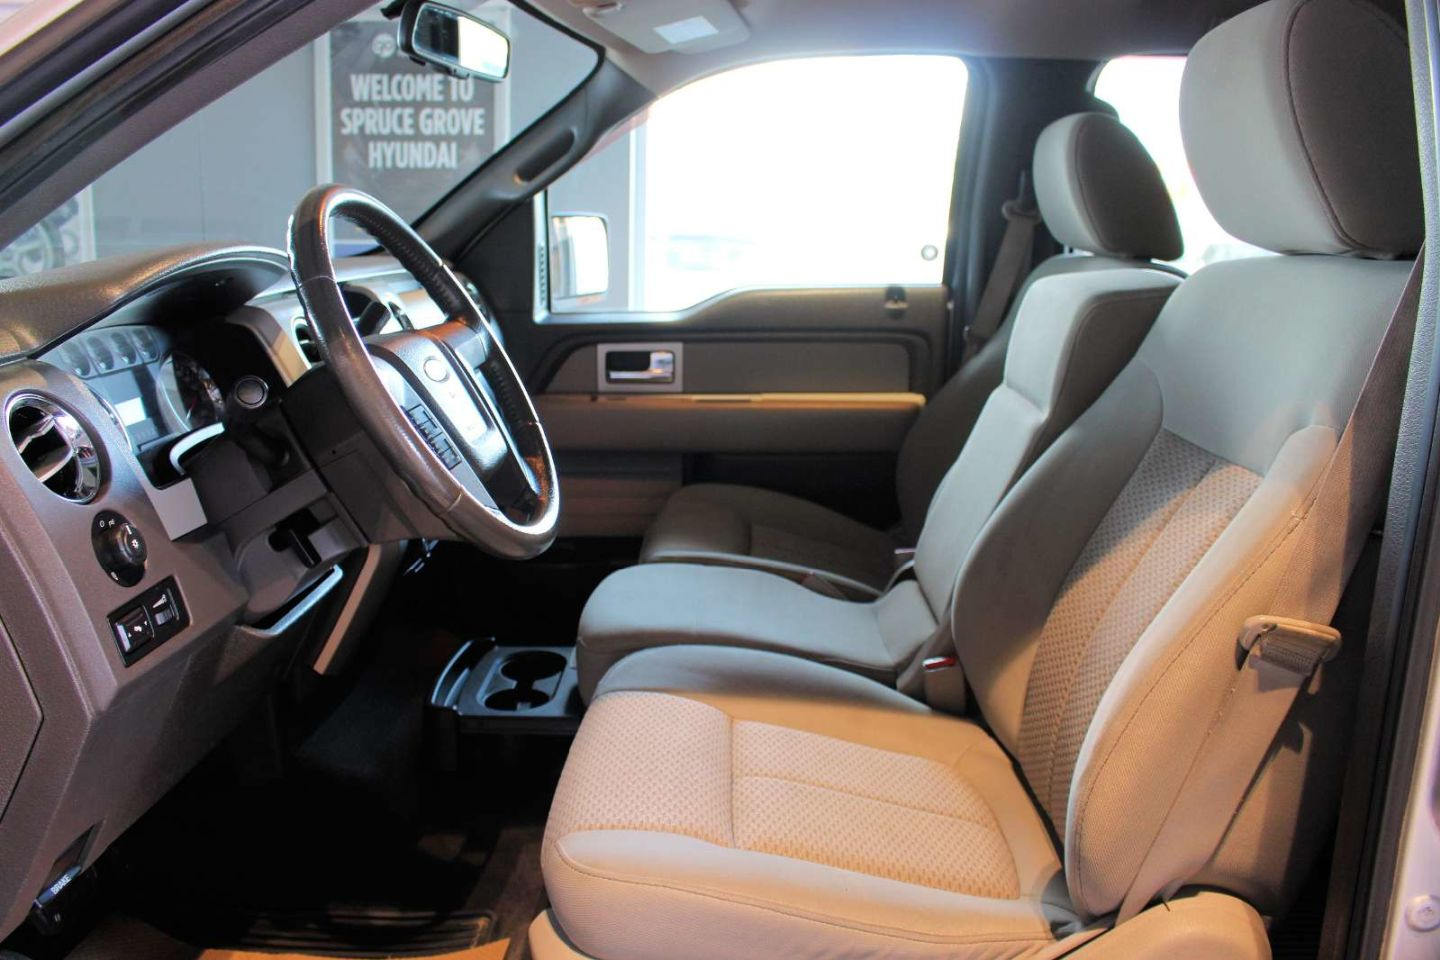 2009 Ford F-150 XLT for sale in Spruce Grove, Alberta